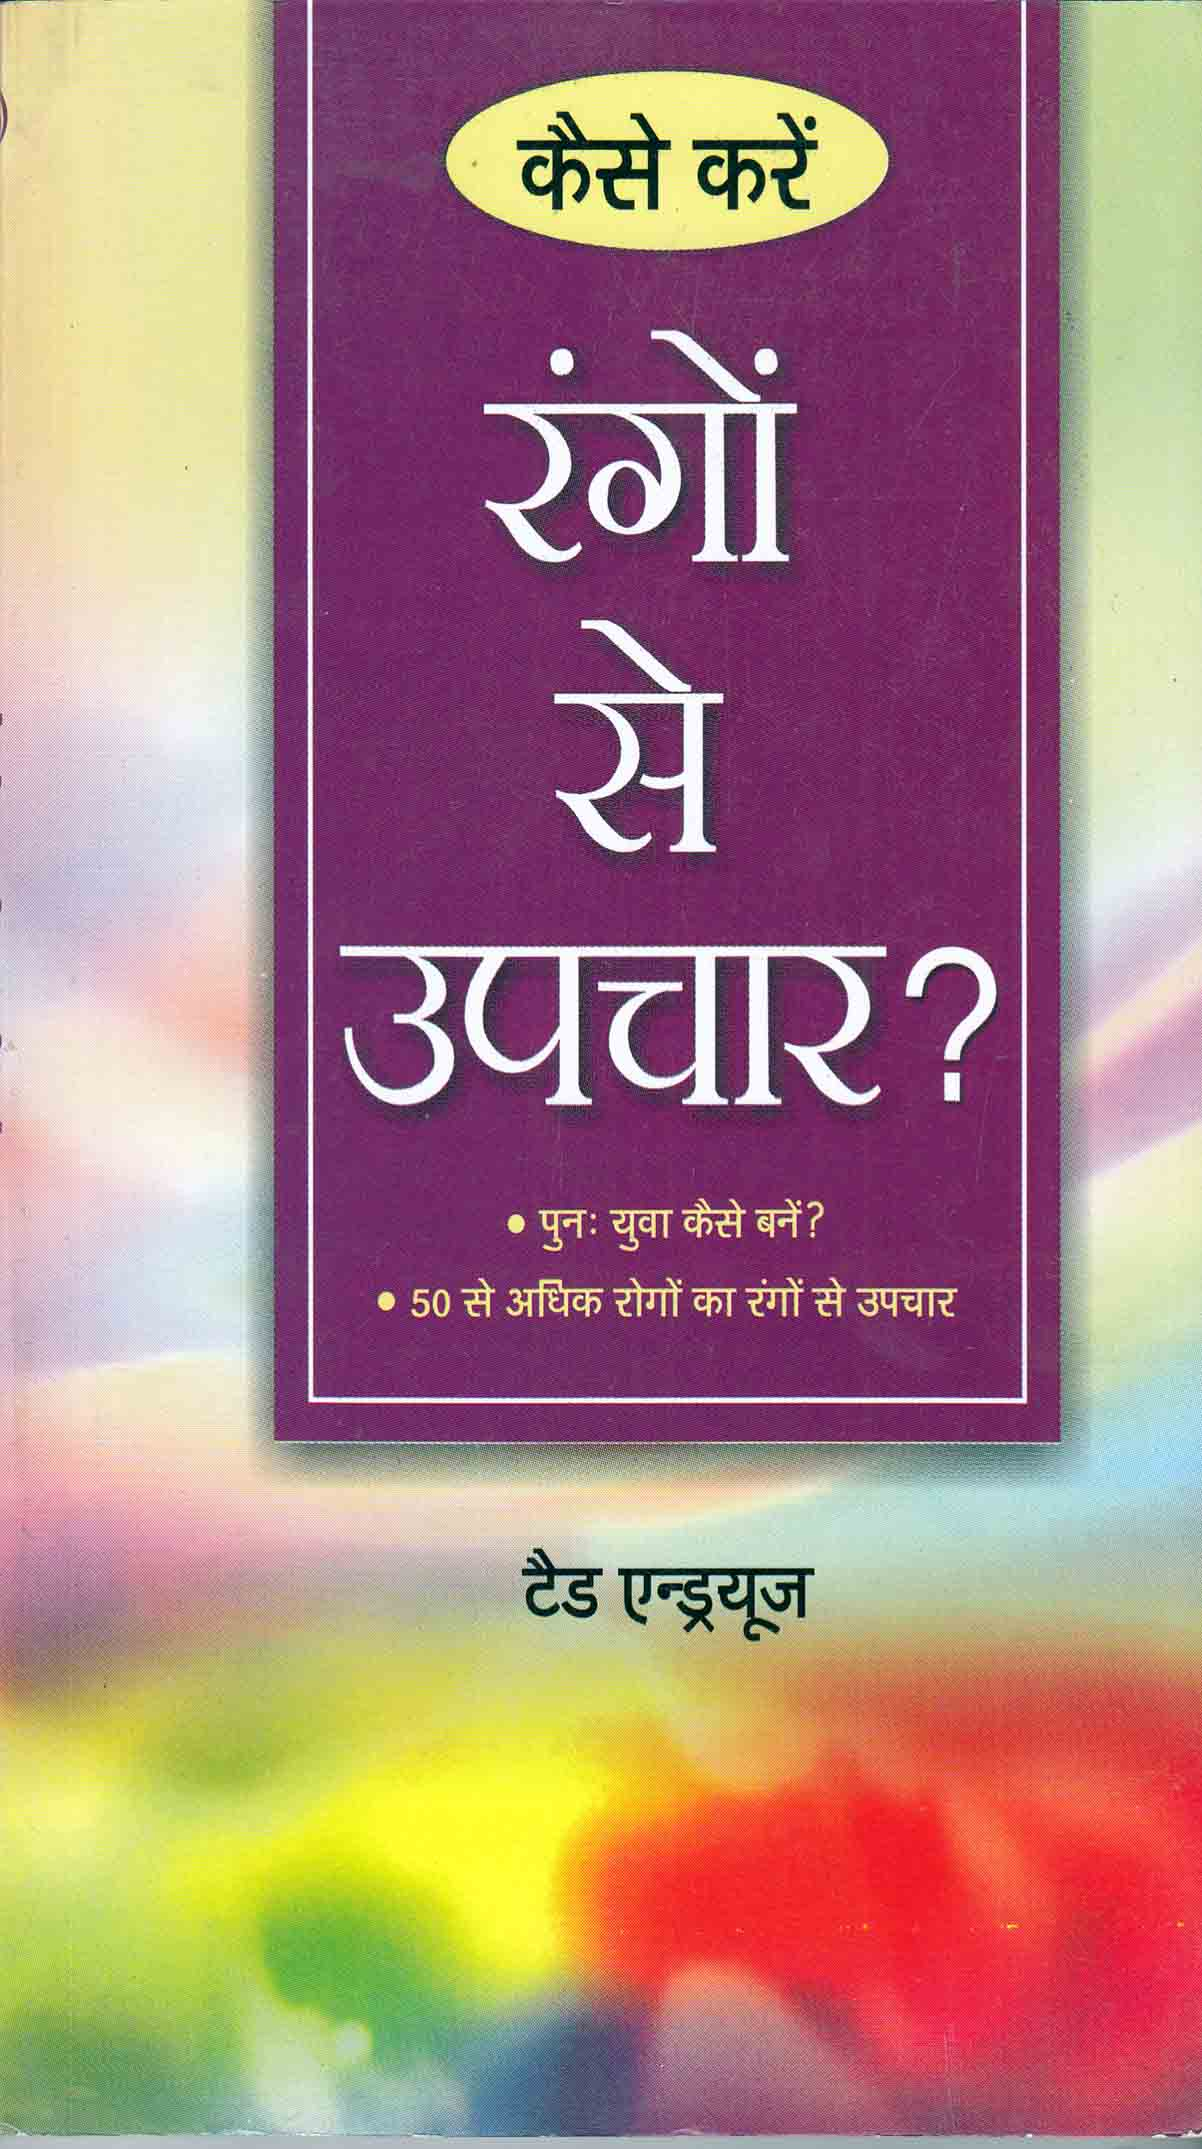 Rango Se Upchar (Colour therapy Book) Hindi